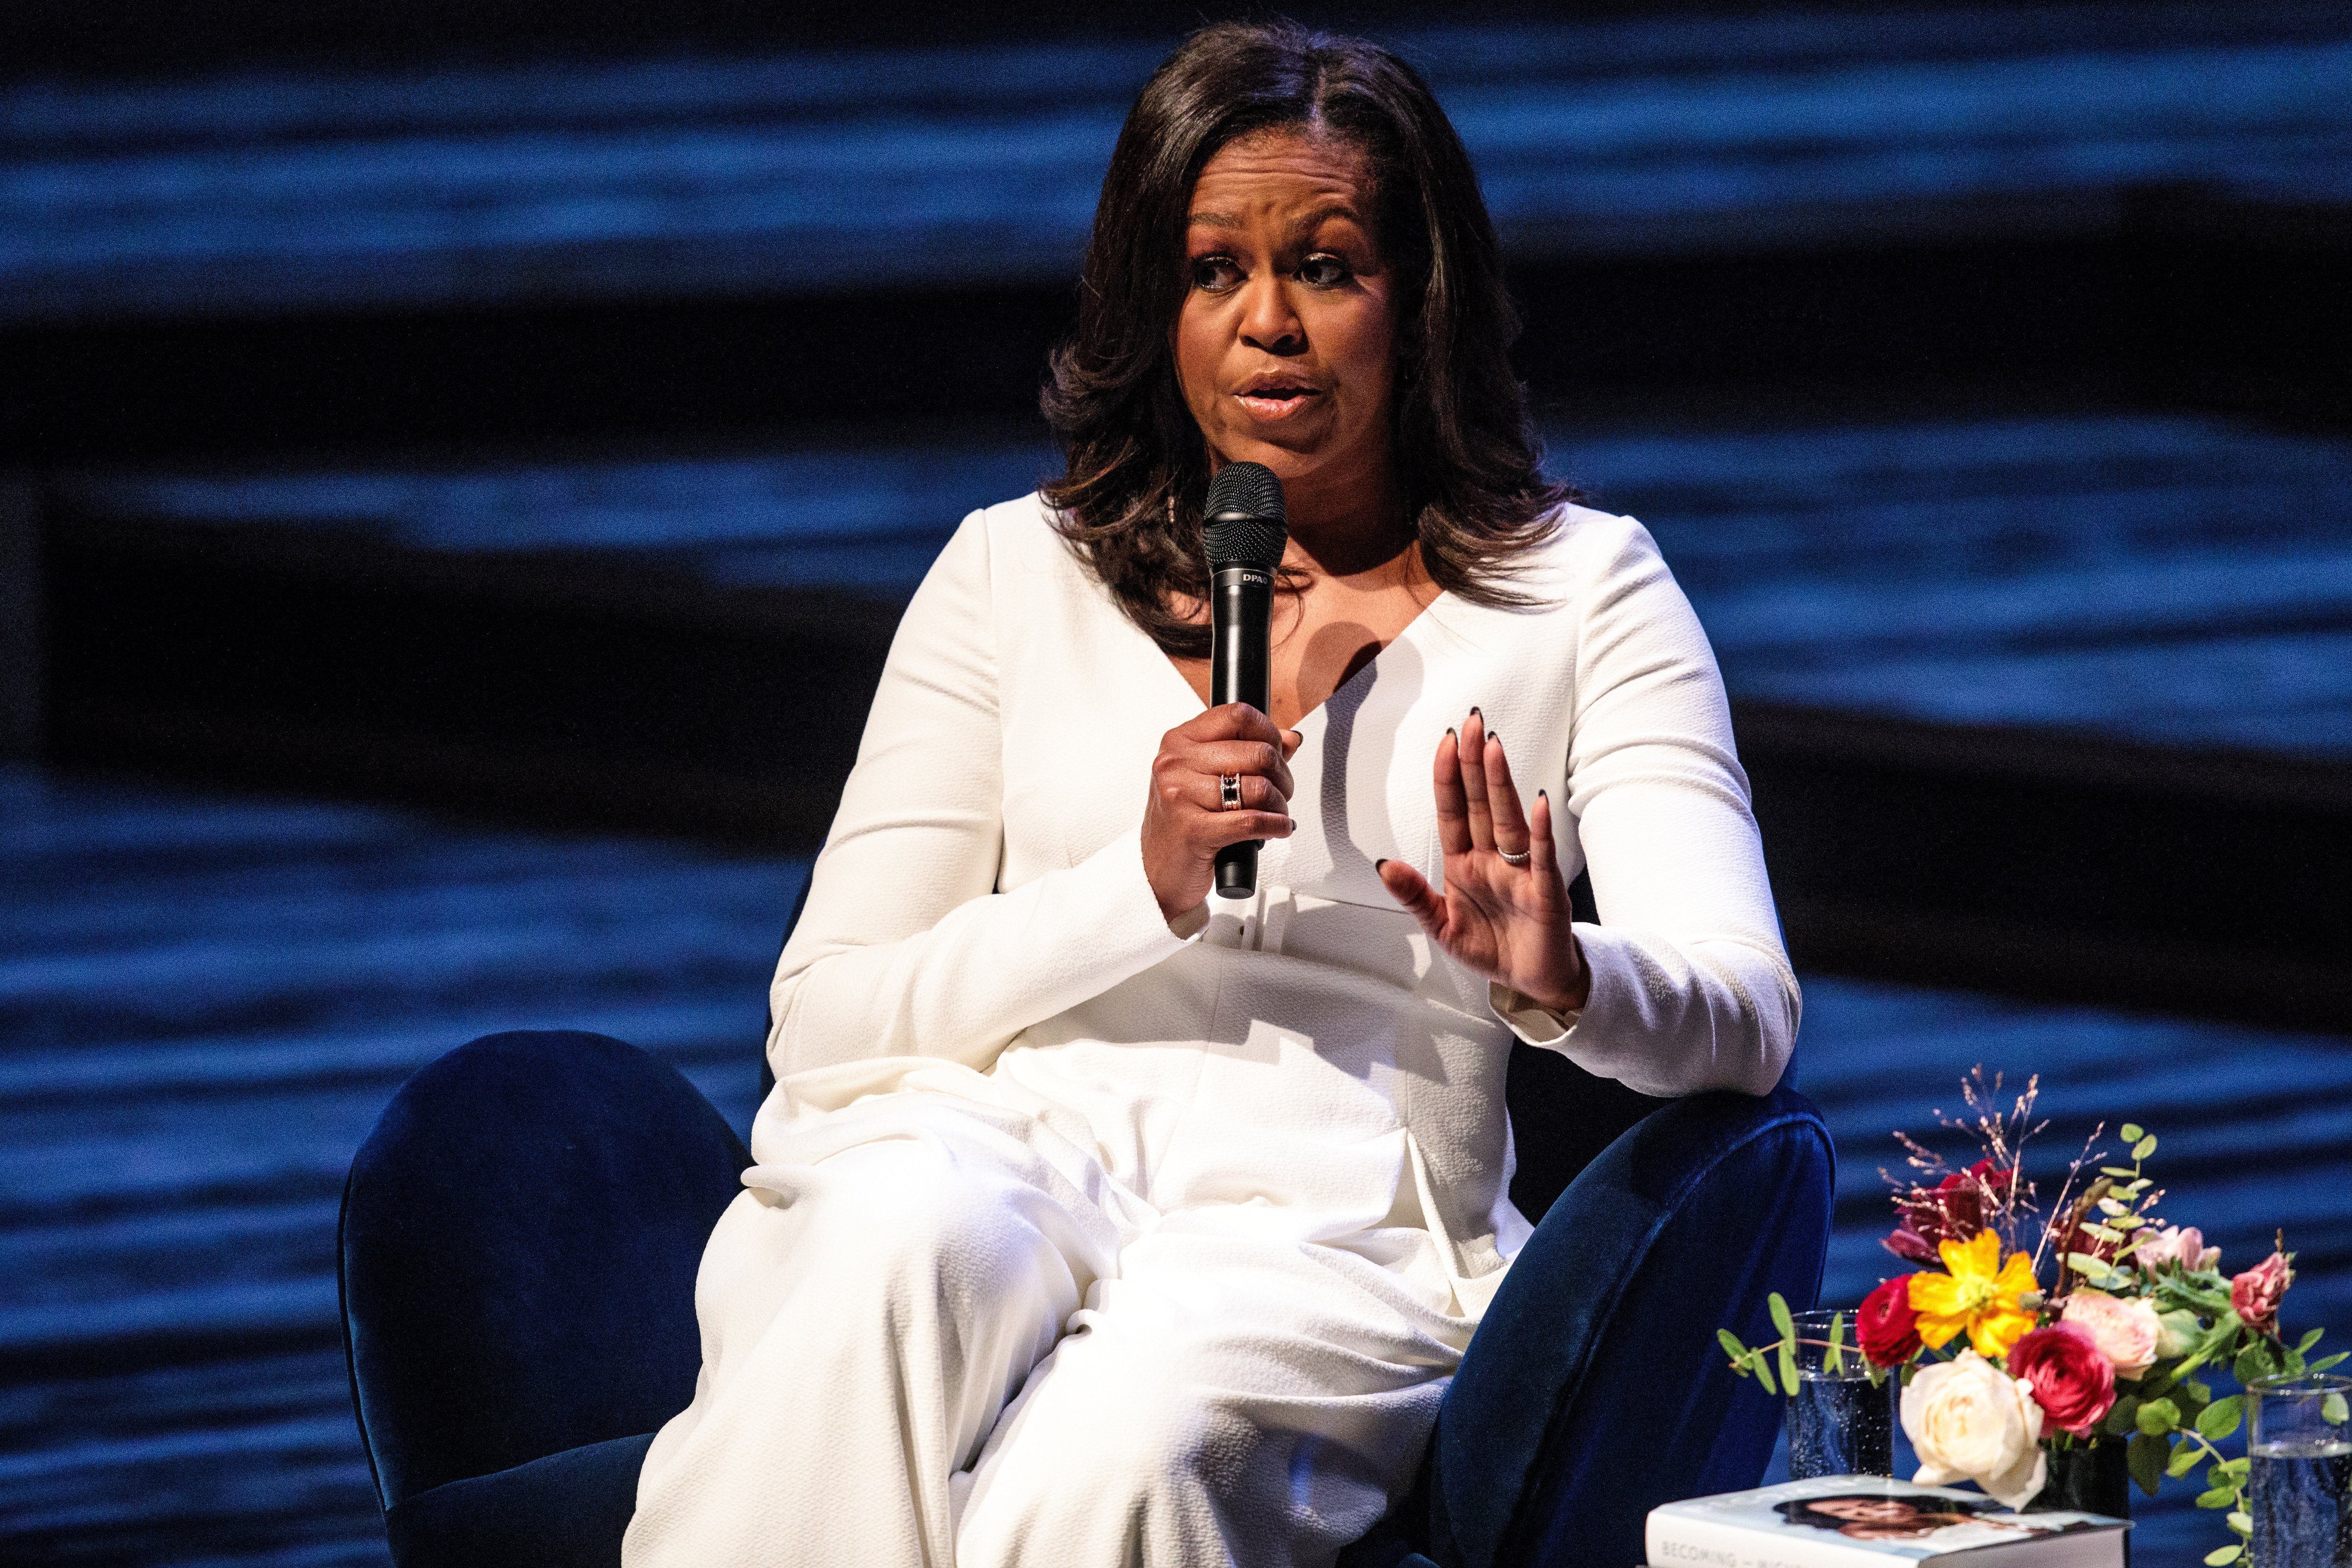 Michelle Obama at The Royal Festival Hall in London, England | Photo: Getty Images